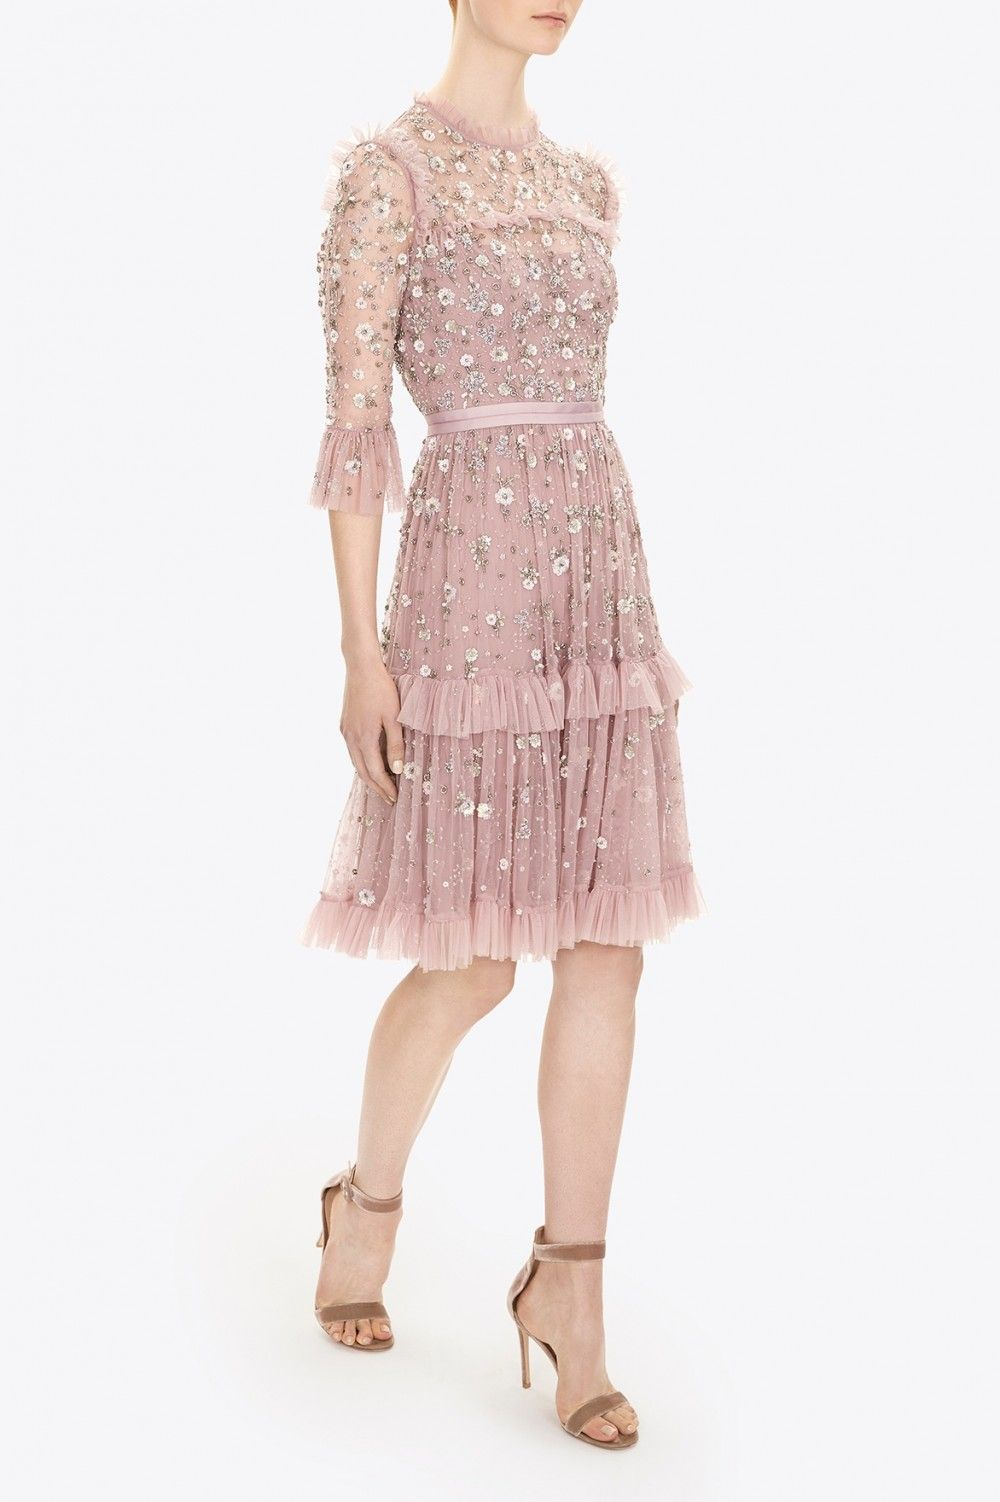 Next day shipping cocktail dresses